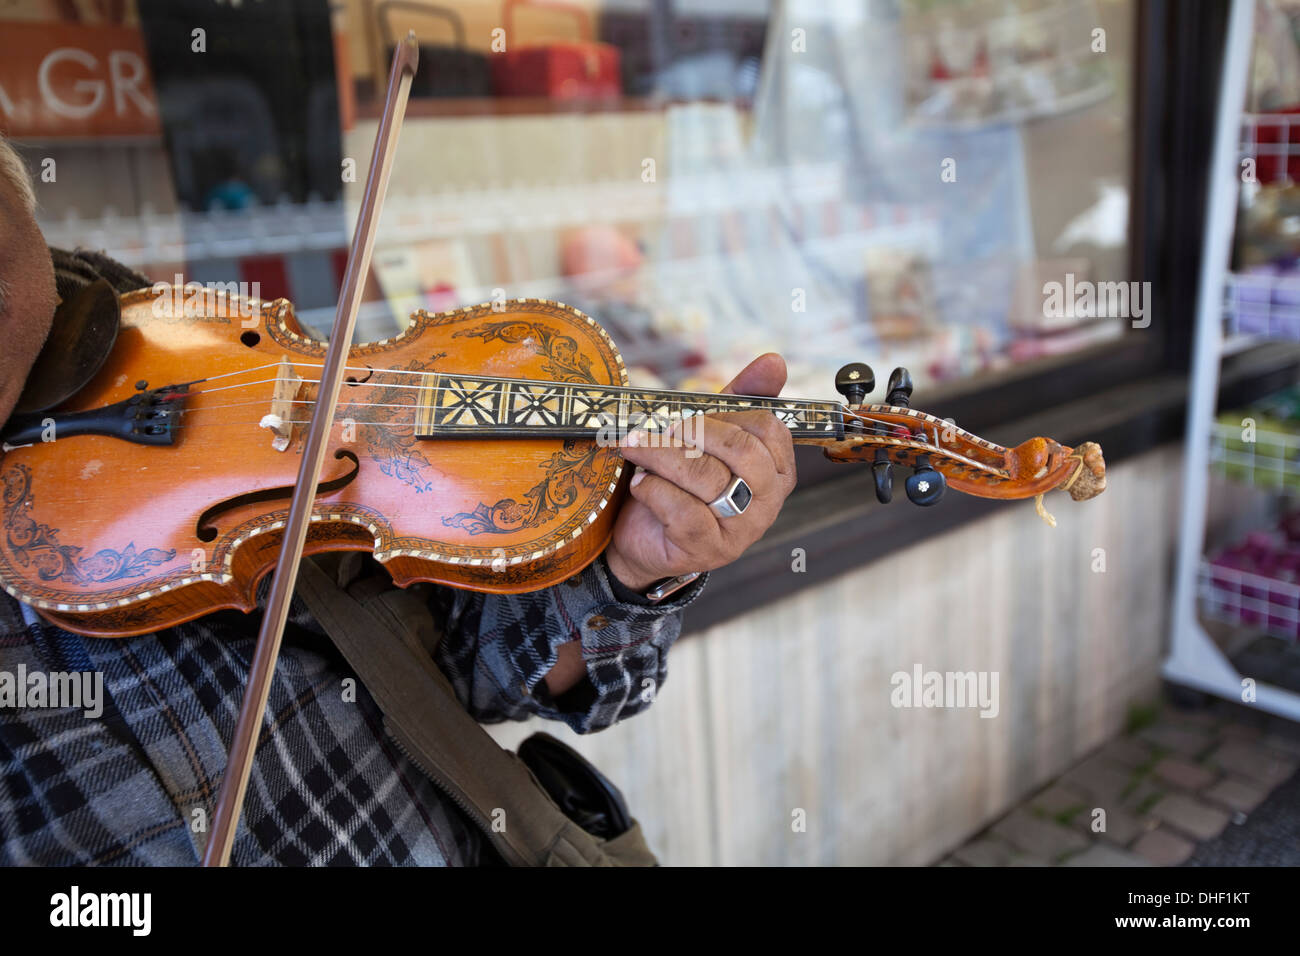 street musician, playing a violin - Stock Image